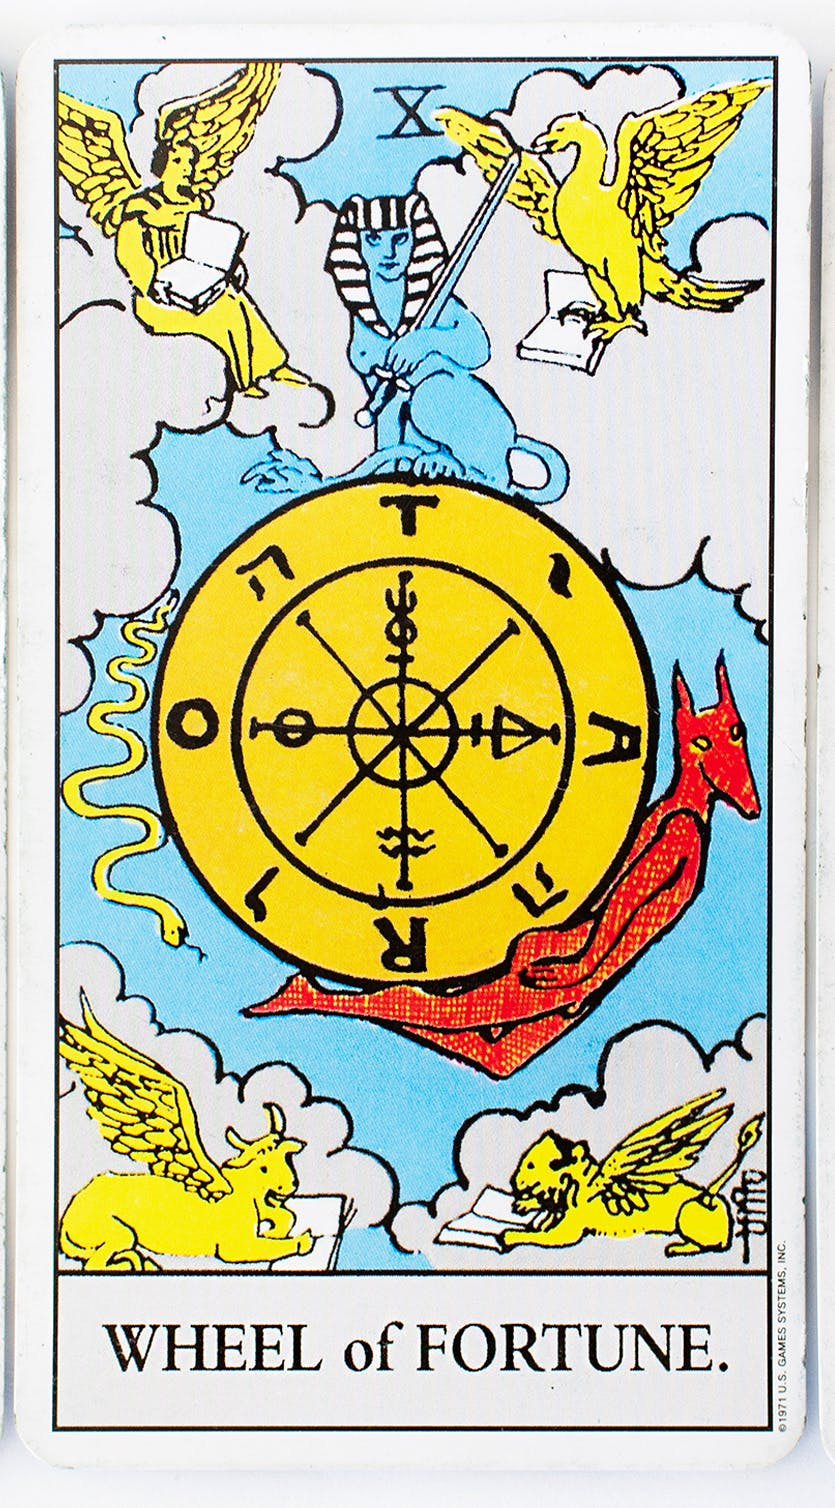 The wheel of fortune card from the Rider-waite deck. Illustration of a gold wheel with the devil holding it up from the bottom and angelic figures above.